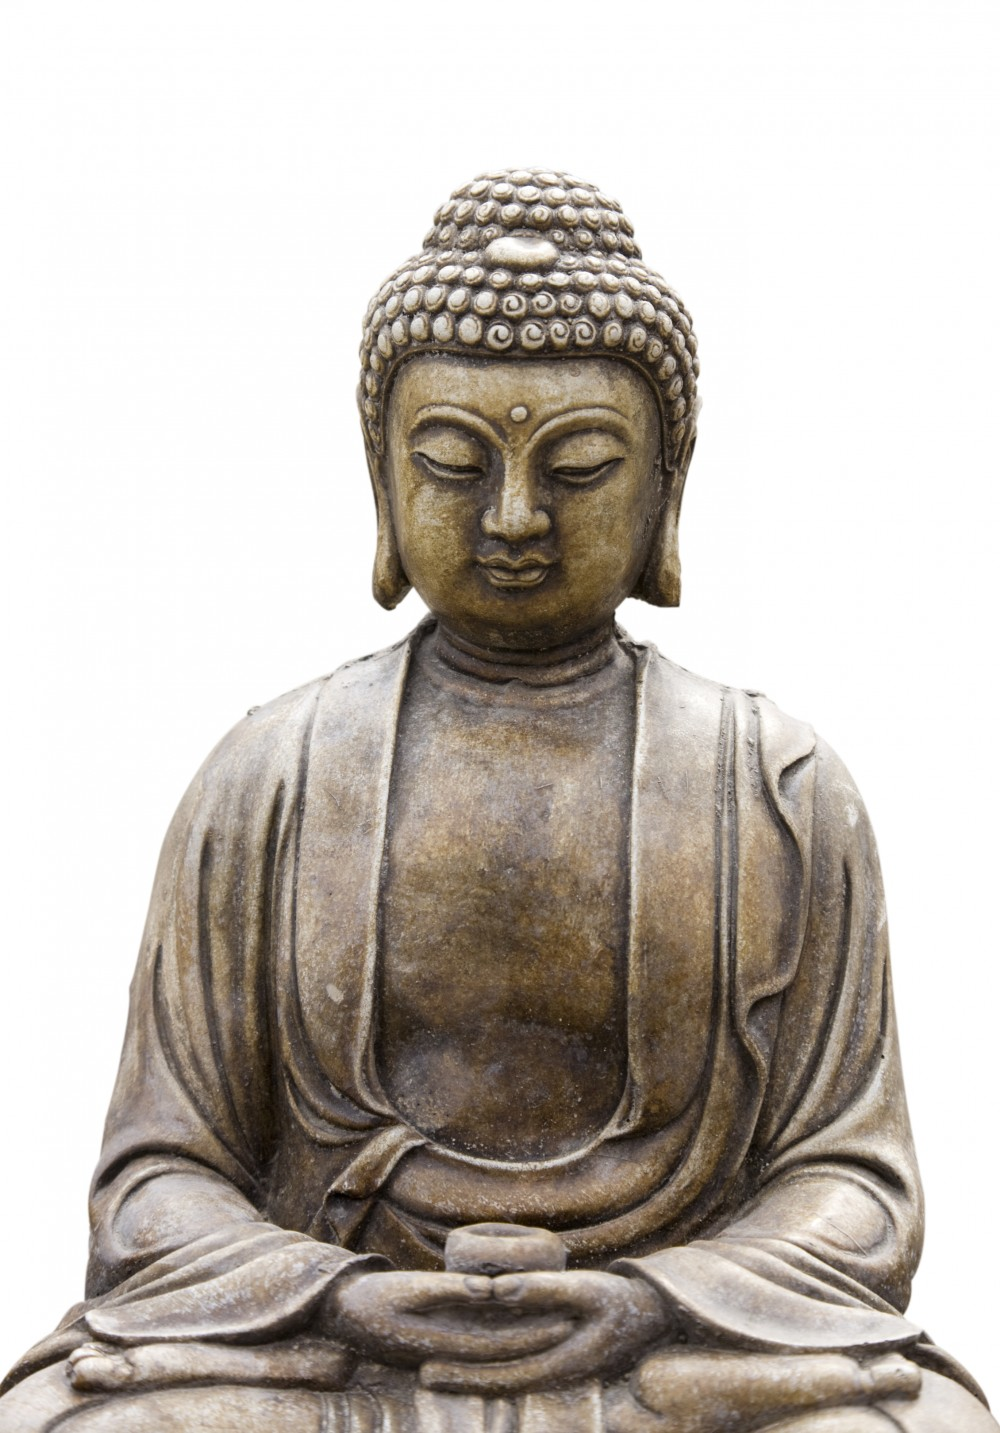 Did you know? - Did you know? Buddha is a teacher, not a God. Siddhartha Gautama (Buddha) was born a wealthy prince, but observed the poverty among his people and left all his wealth behind in search of truth.